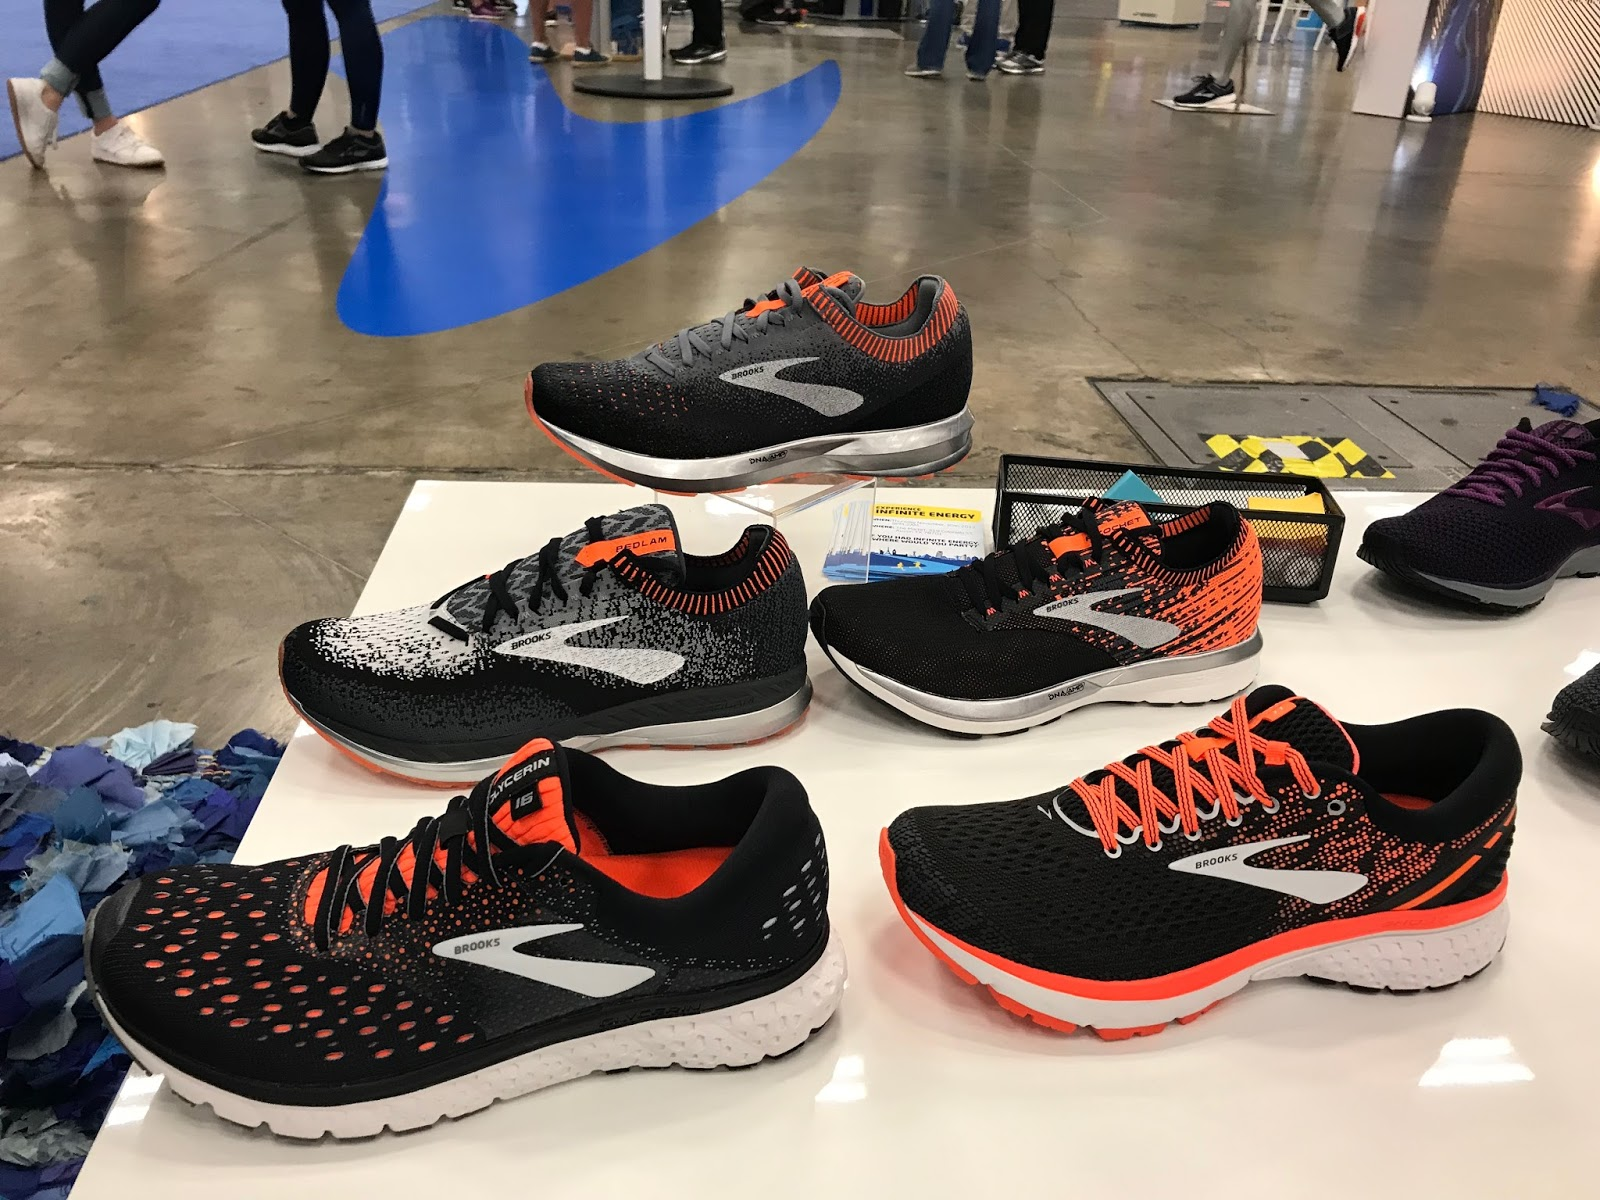 12a90ac811a1 Fall 2018 Brooks Previews HERE New DNA AMP Ricochet and Bedlam